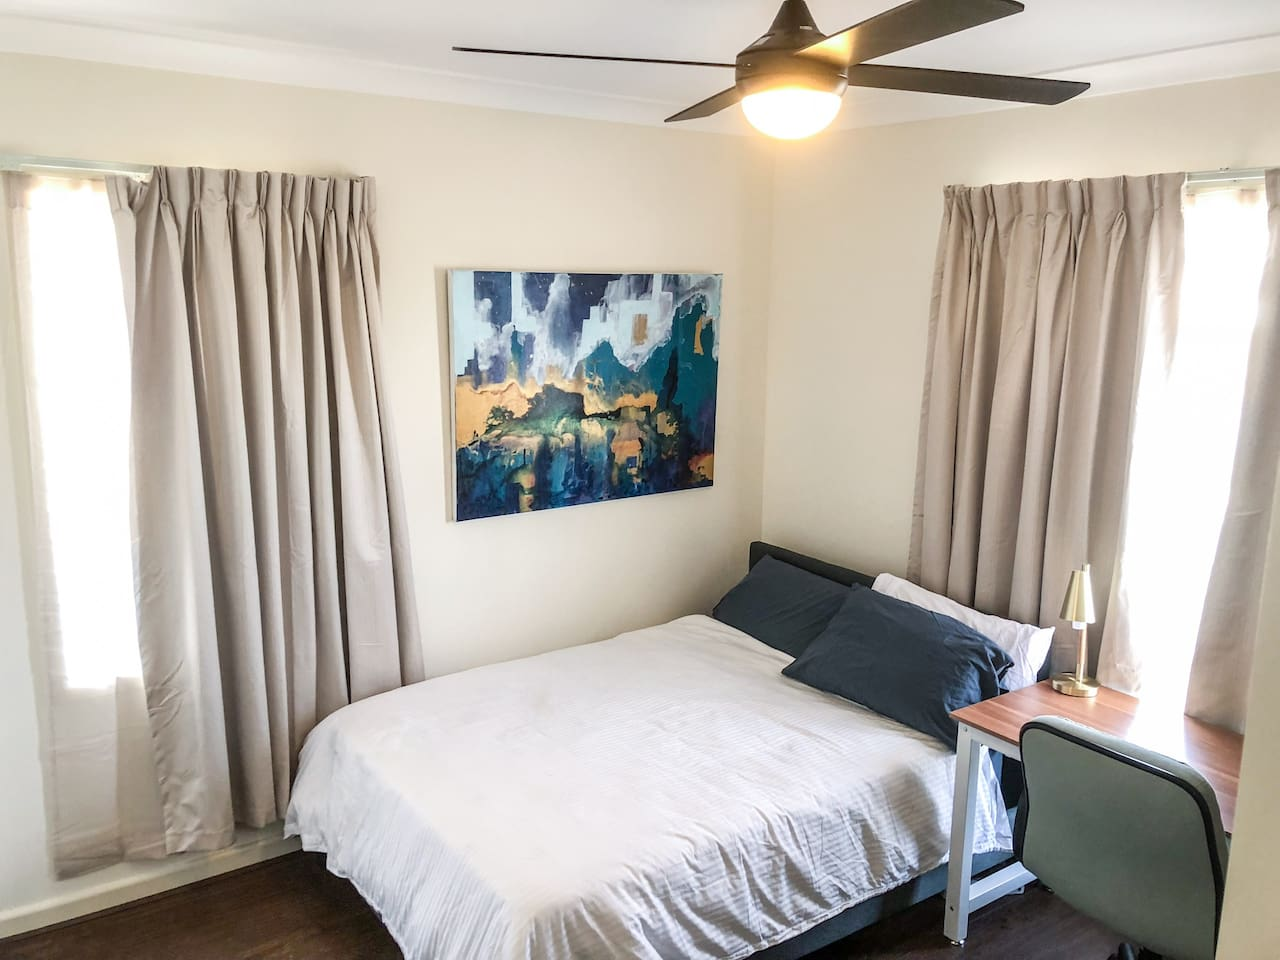 Large, light filled room with double bed